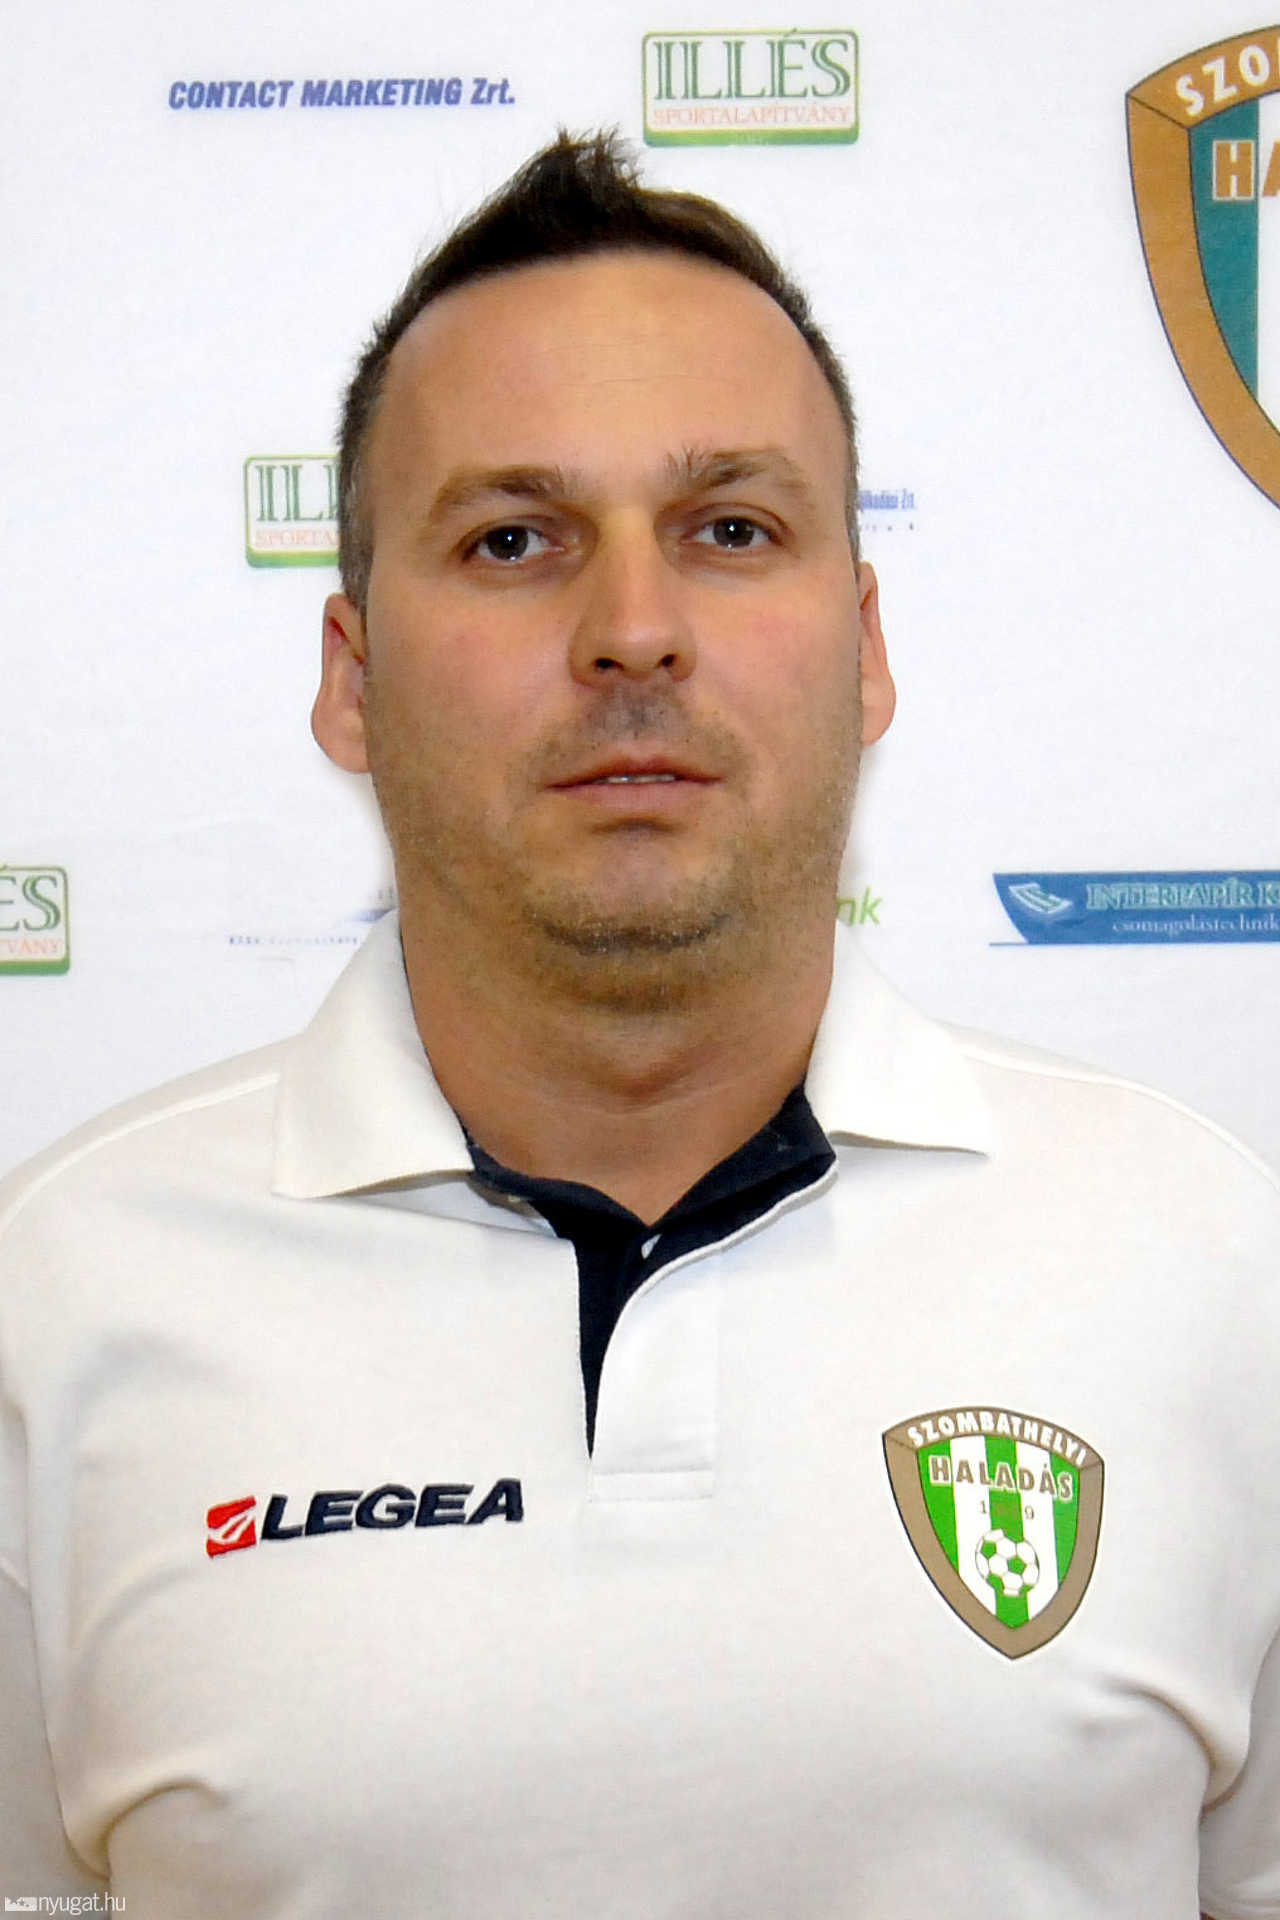 Jakab Ferenc